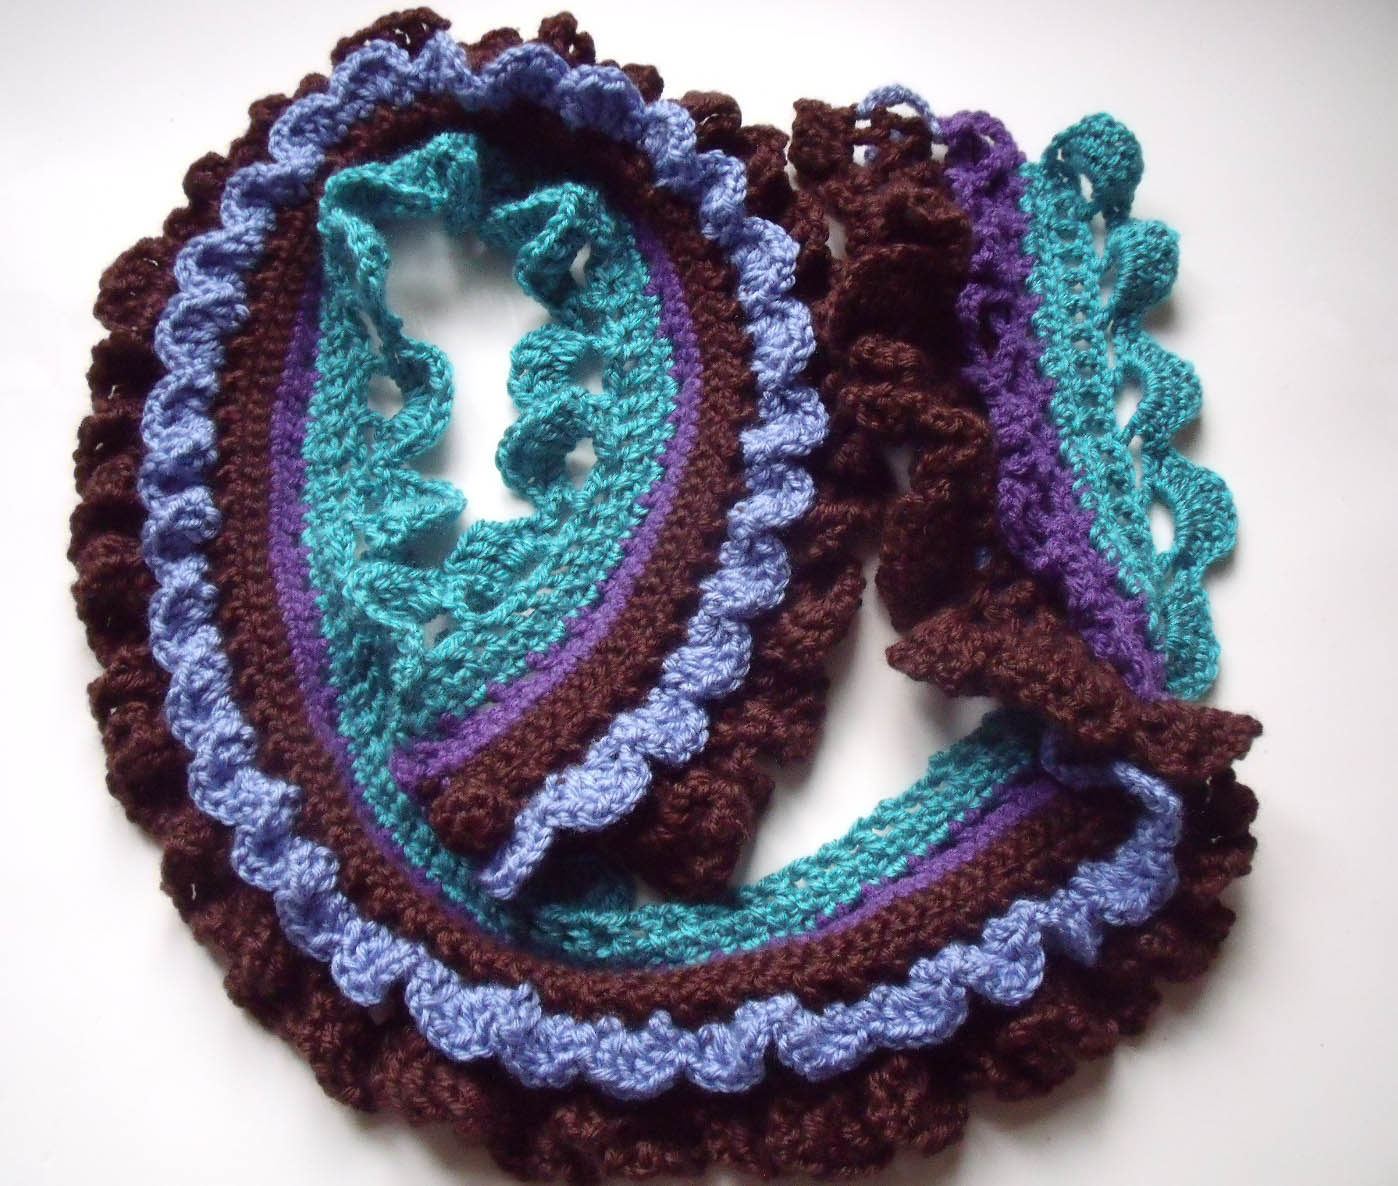 Crocheted Cancer Ribbon: